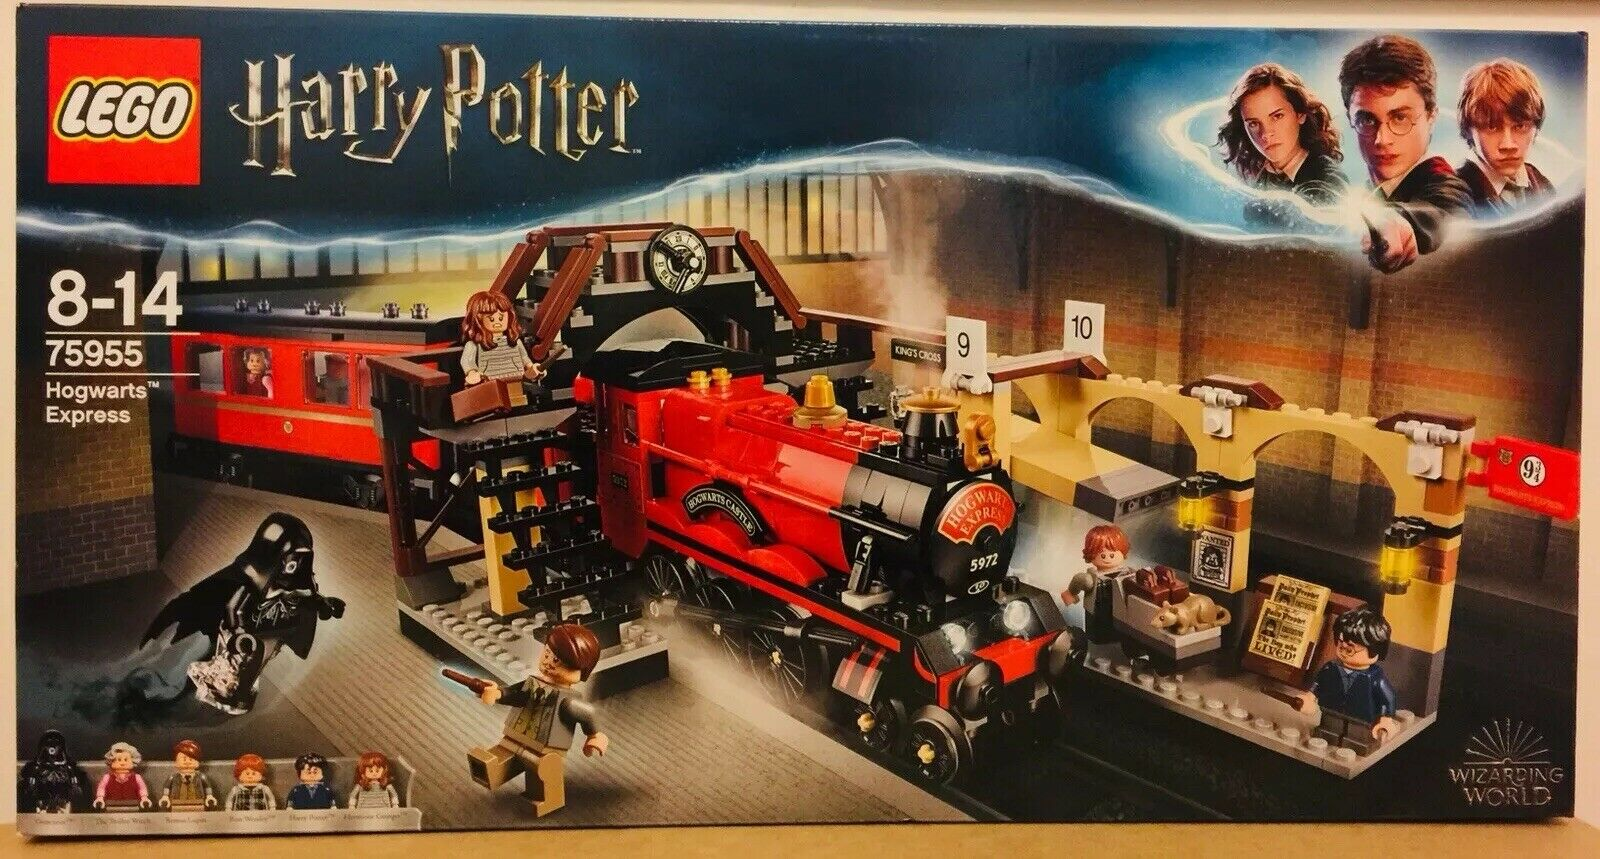 Lego Harry Potter  Hogwarts Express 75955 Recommended Age 8-14 (New Unopened)